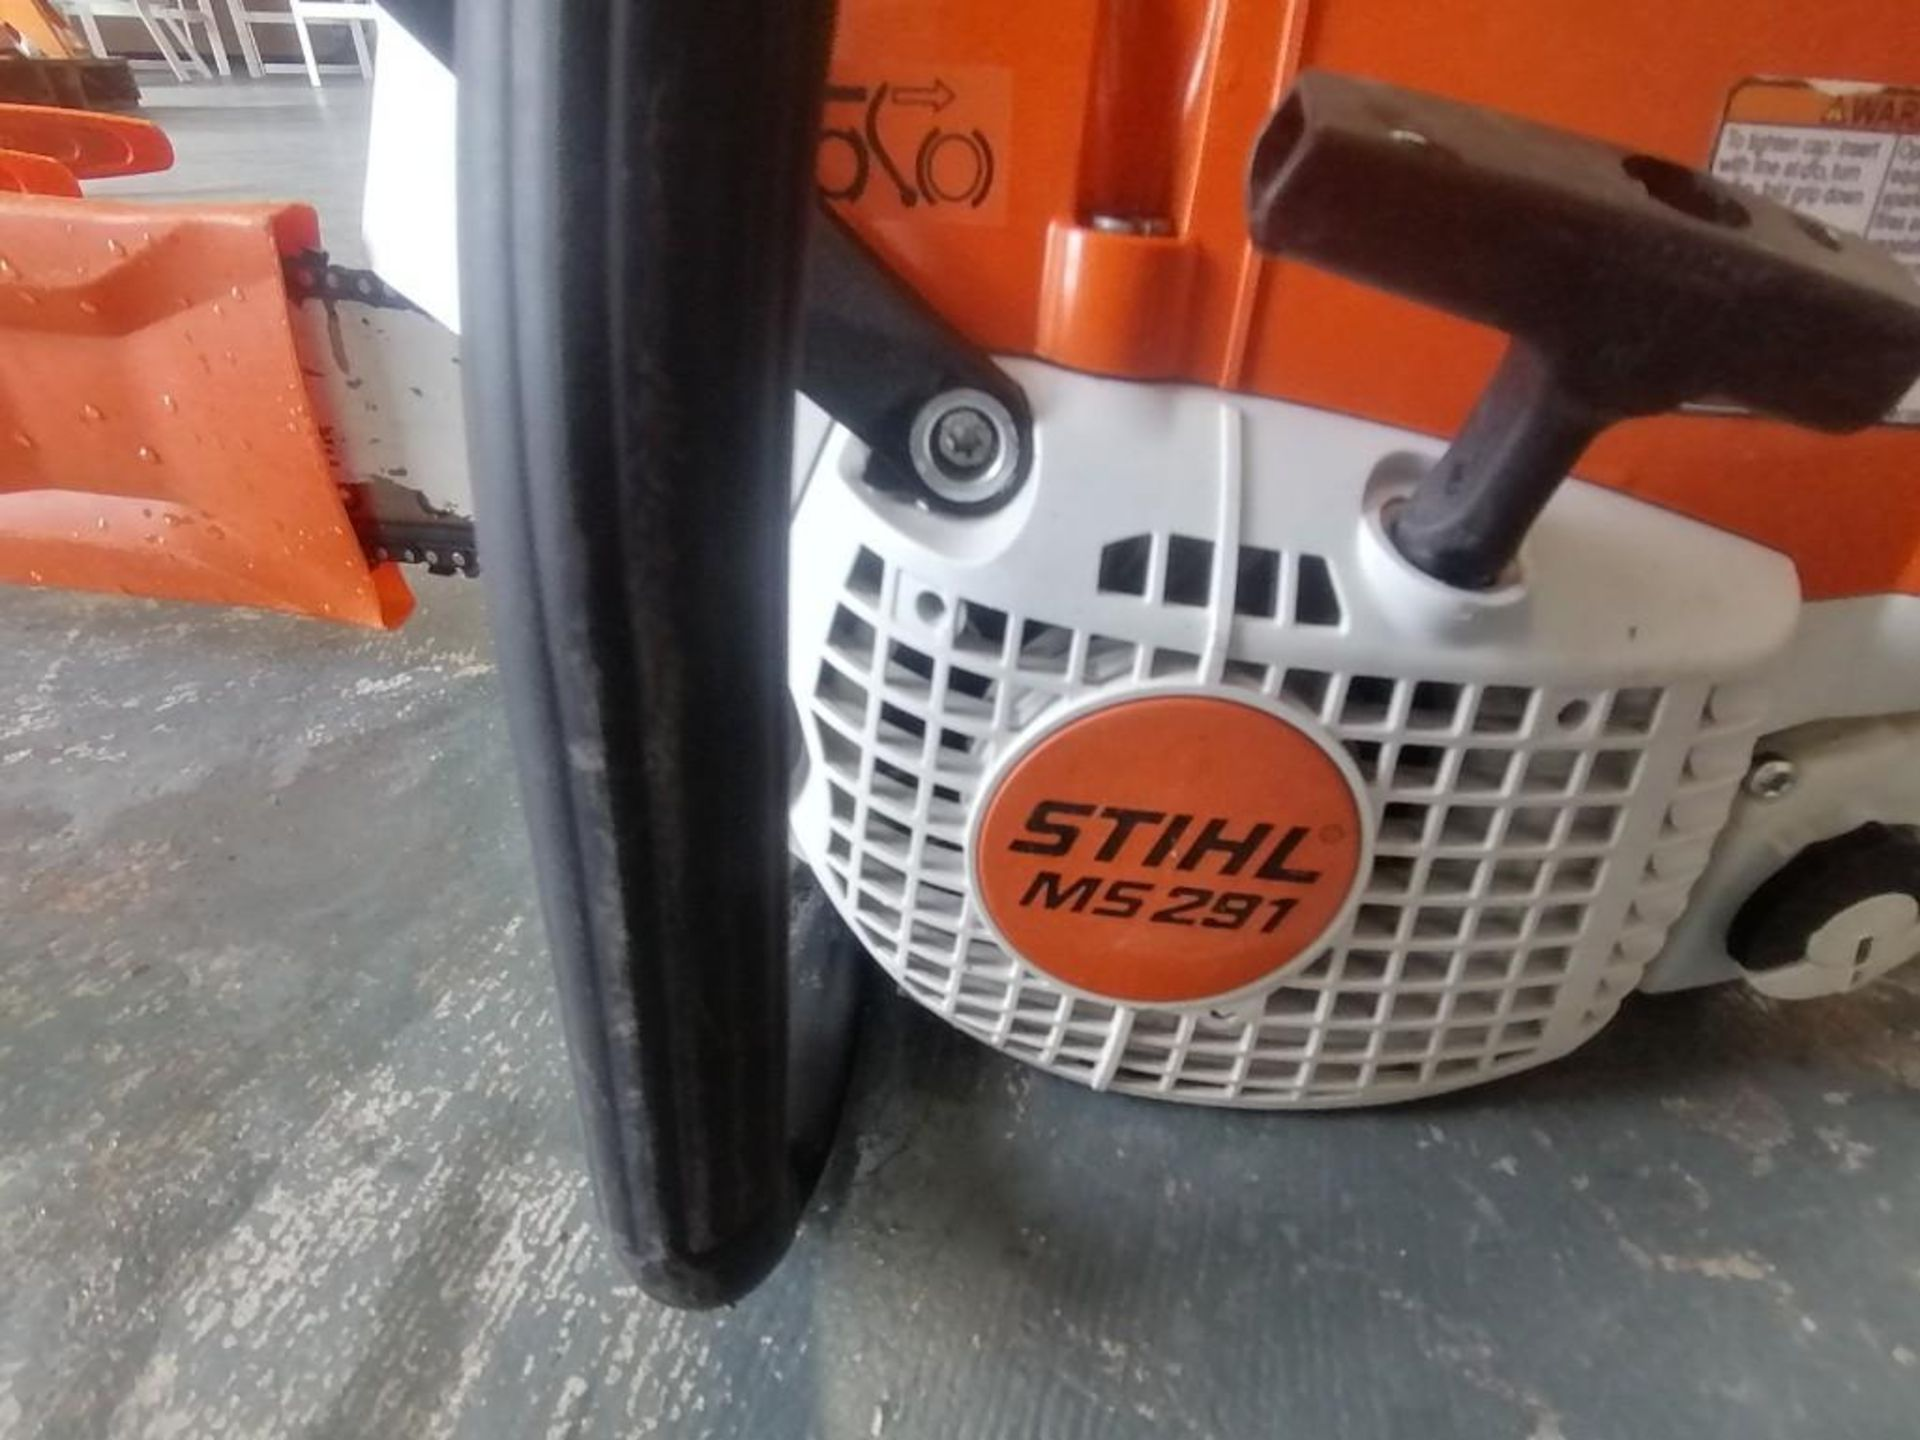 Lot 17 - (1) Stihl MS291 Chainsaw. Located at 301 E Henry Street, Mt. Pleasant, IA 52641.